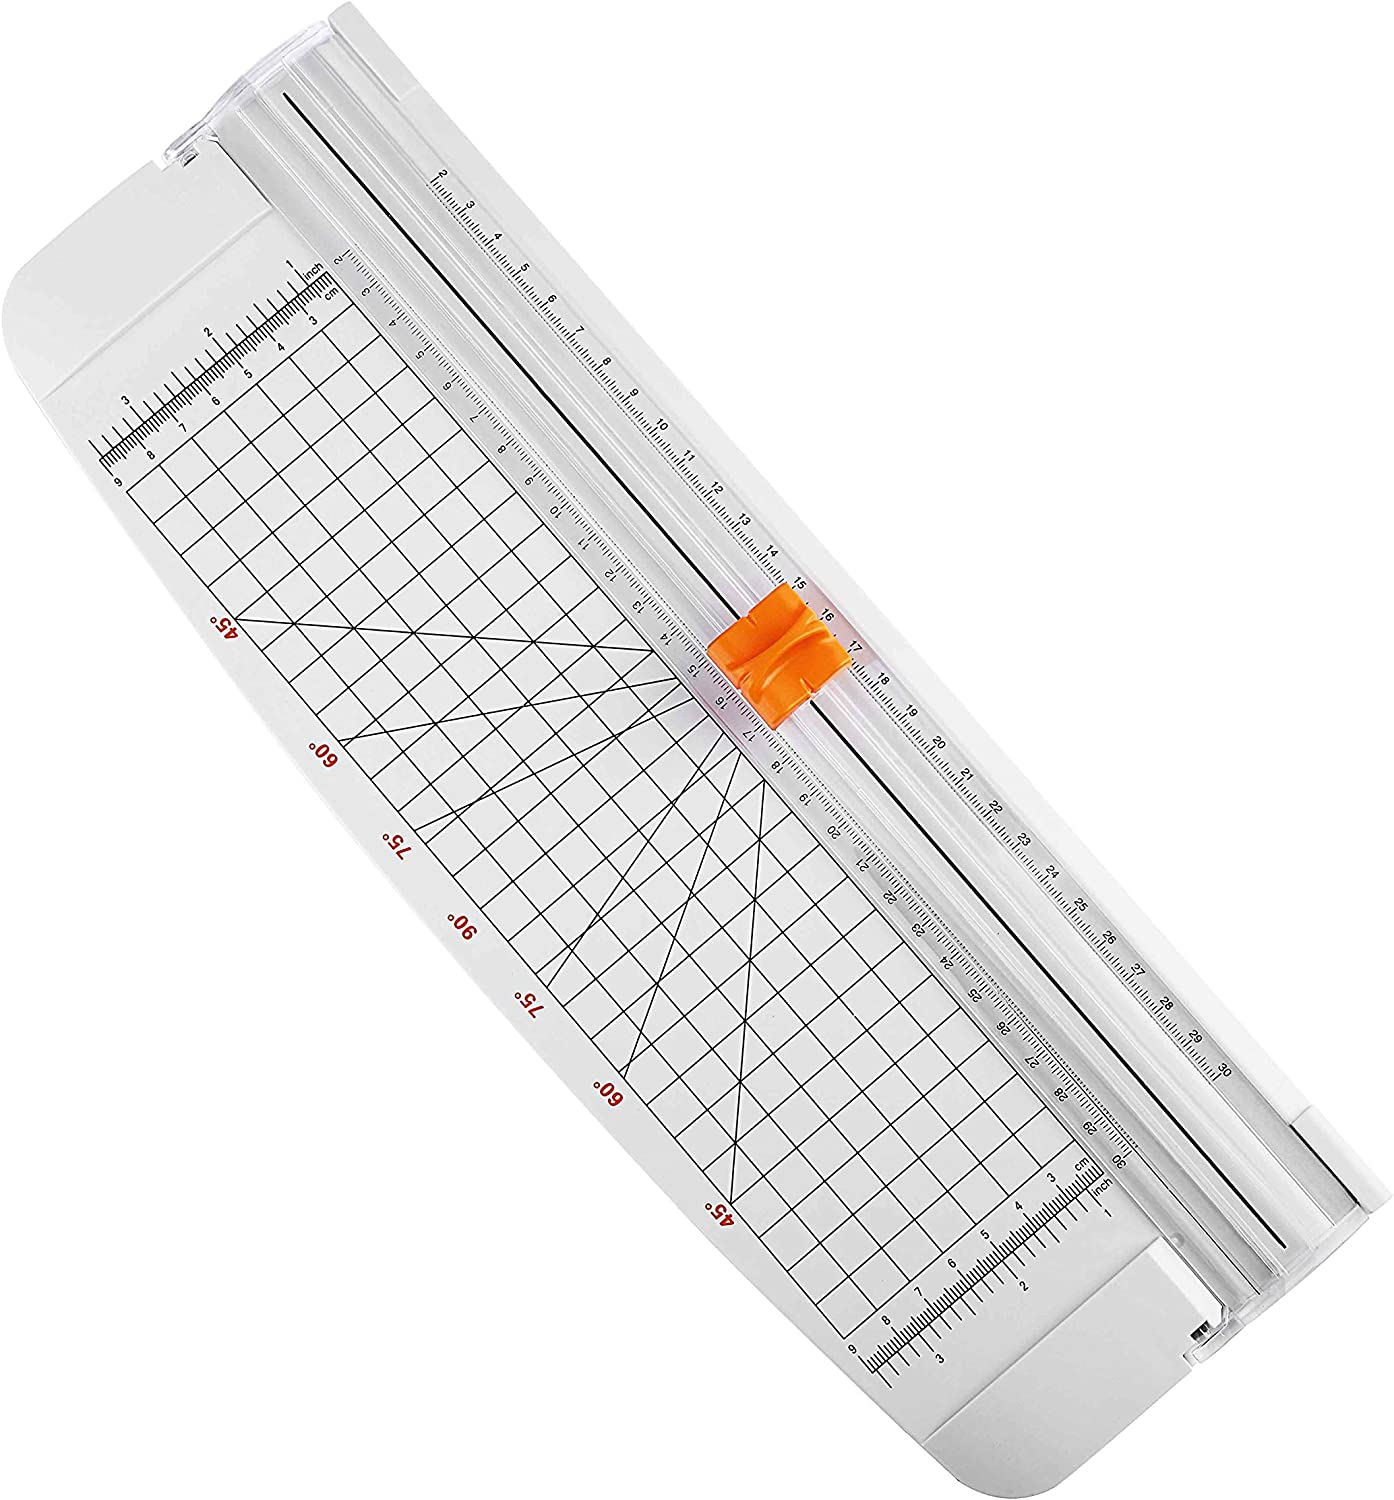 Paper Trimmer Craft Cutter Fees free A4 Safe Automatic Titanium with Super special price